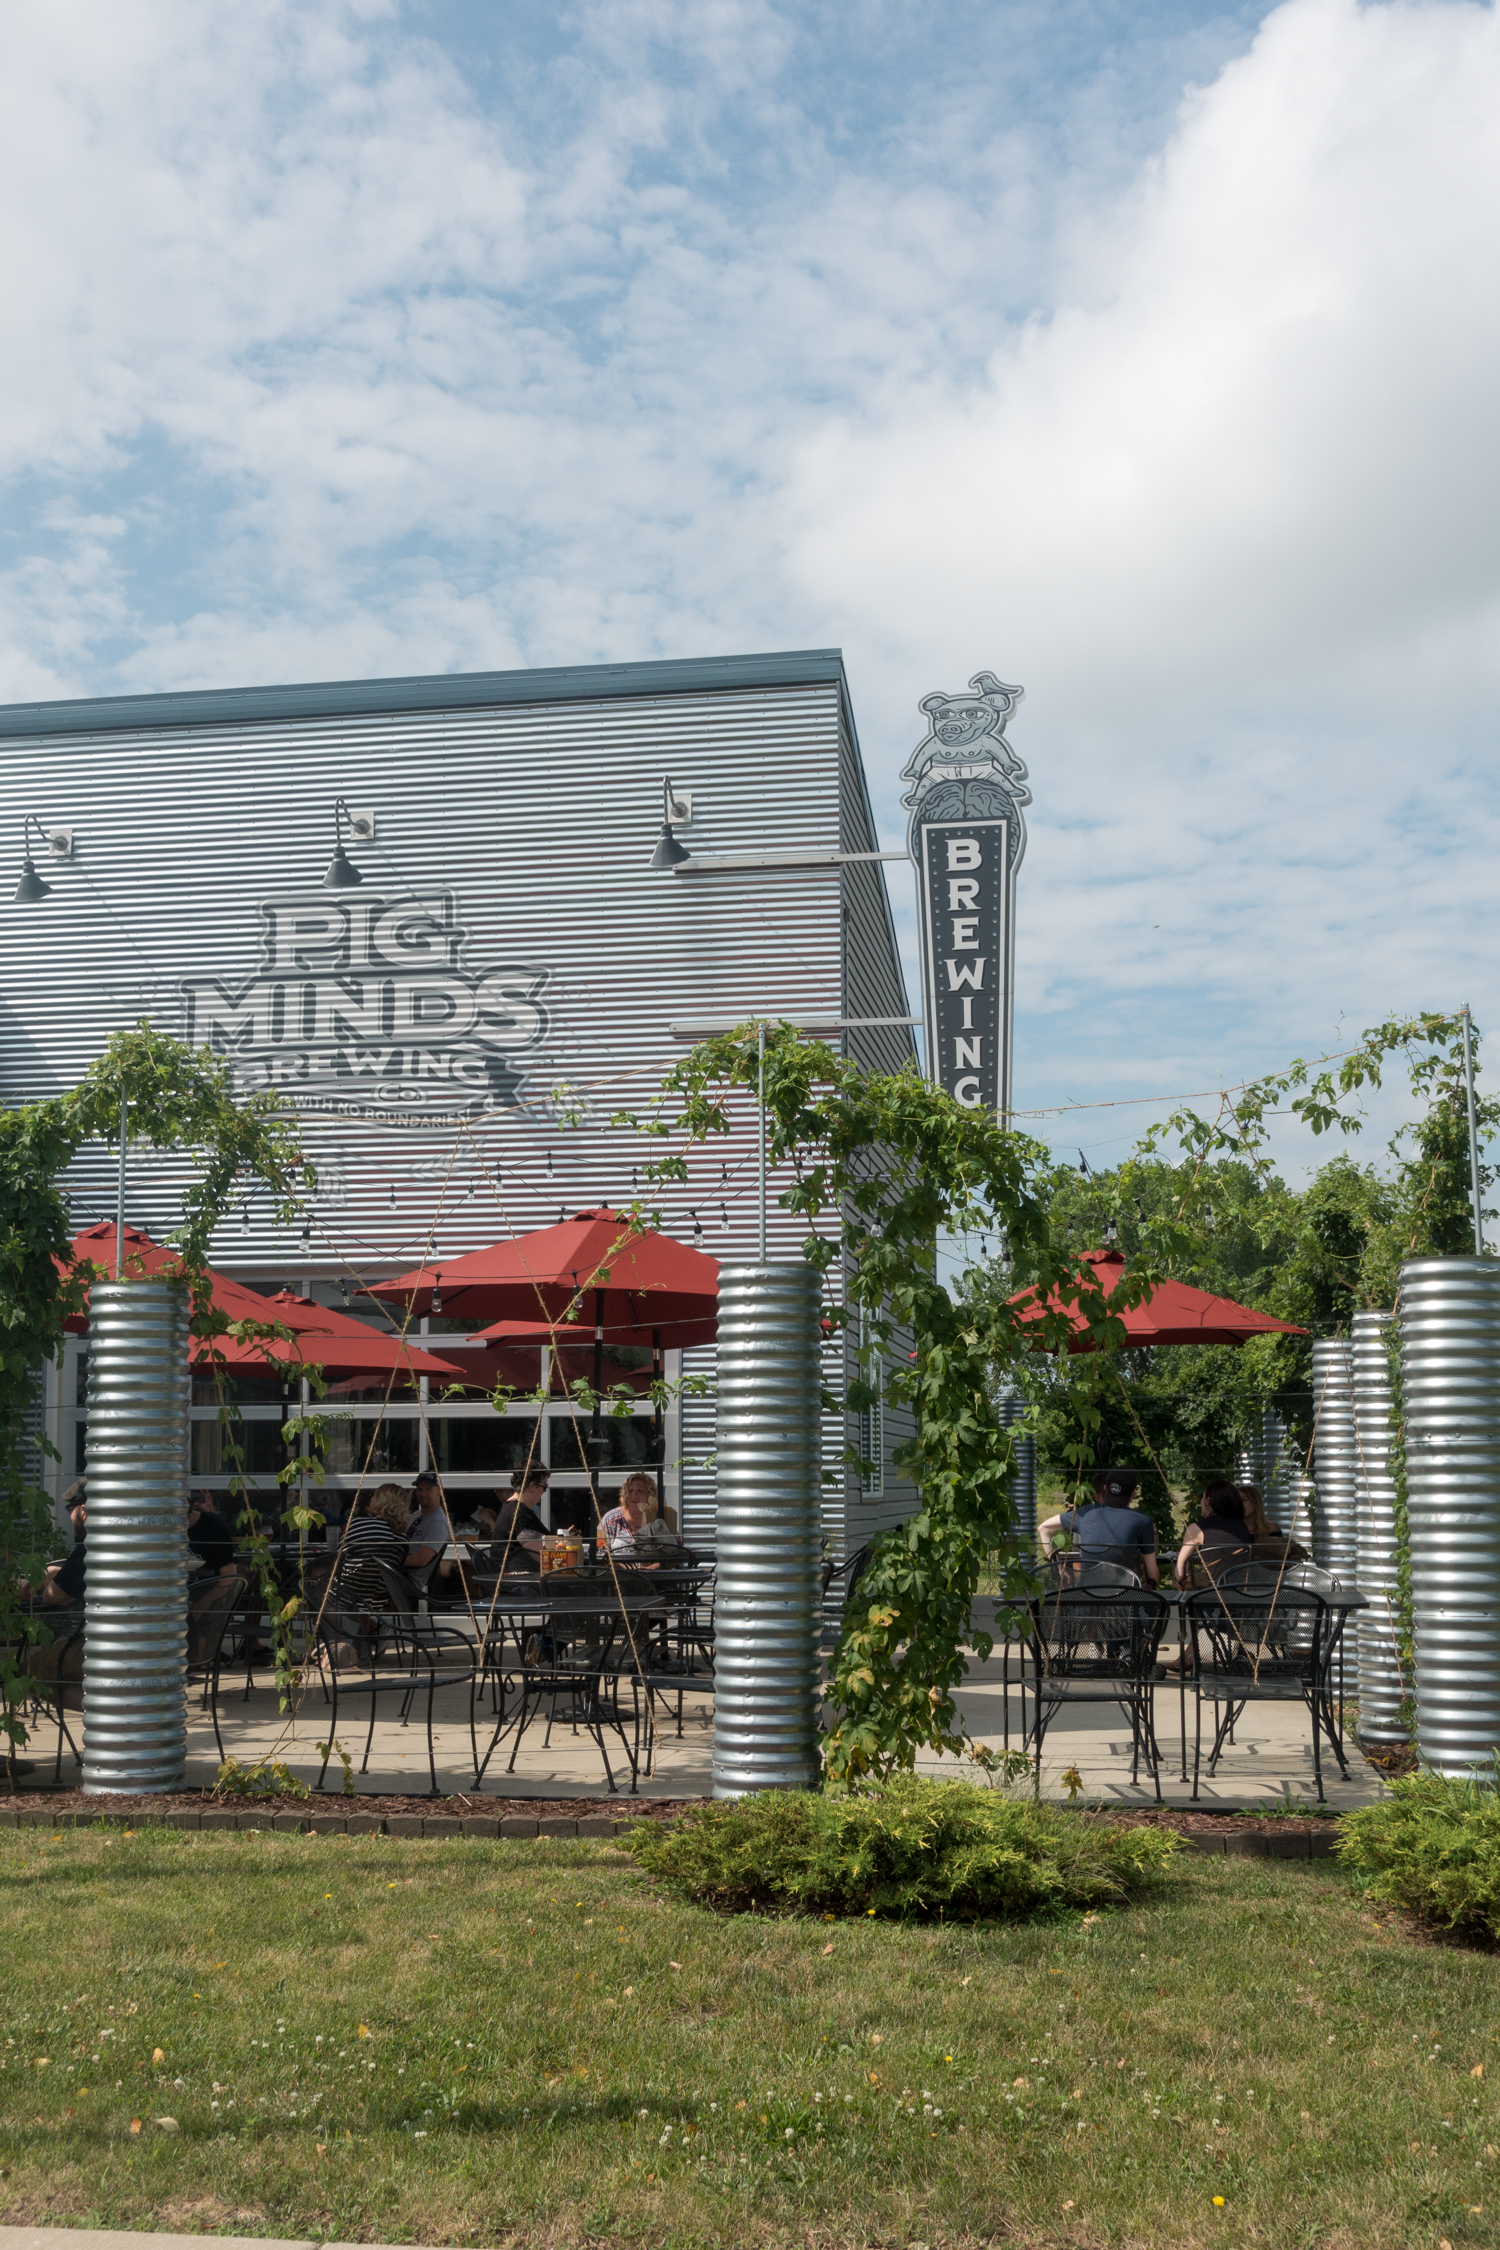 Pig Minds Brewing is an all Vegan brewery located in Machesney Park, Illinois. It is the perfect spot to stop at on a vegan road trip through the Midwest!